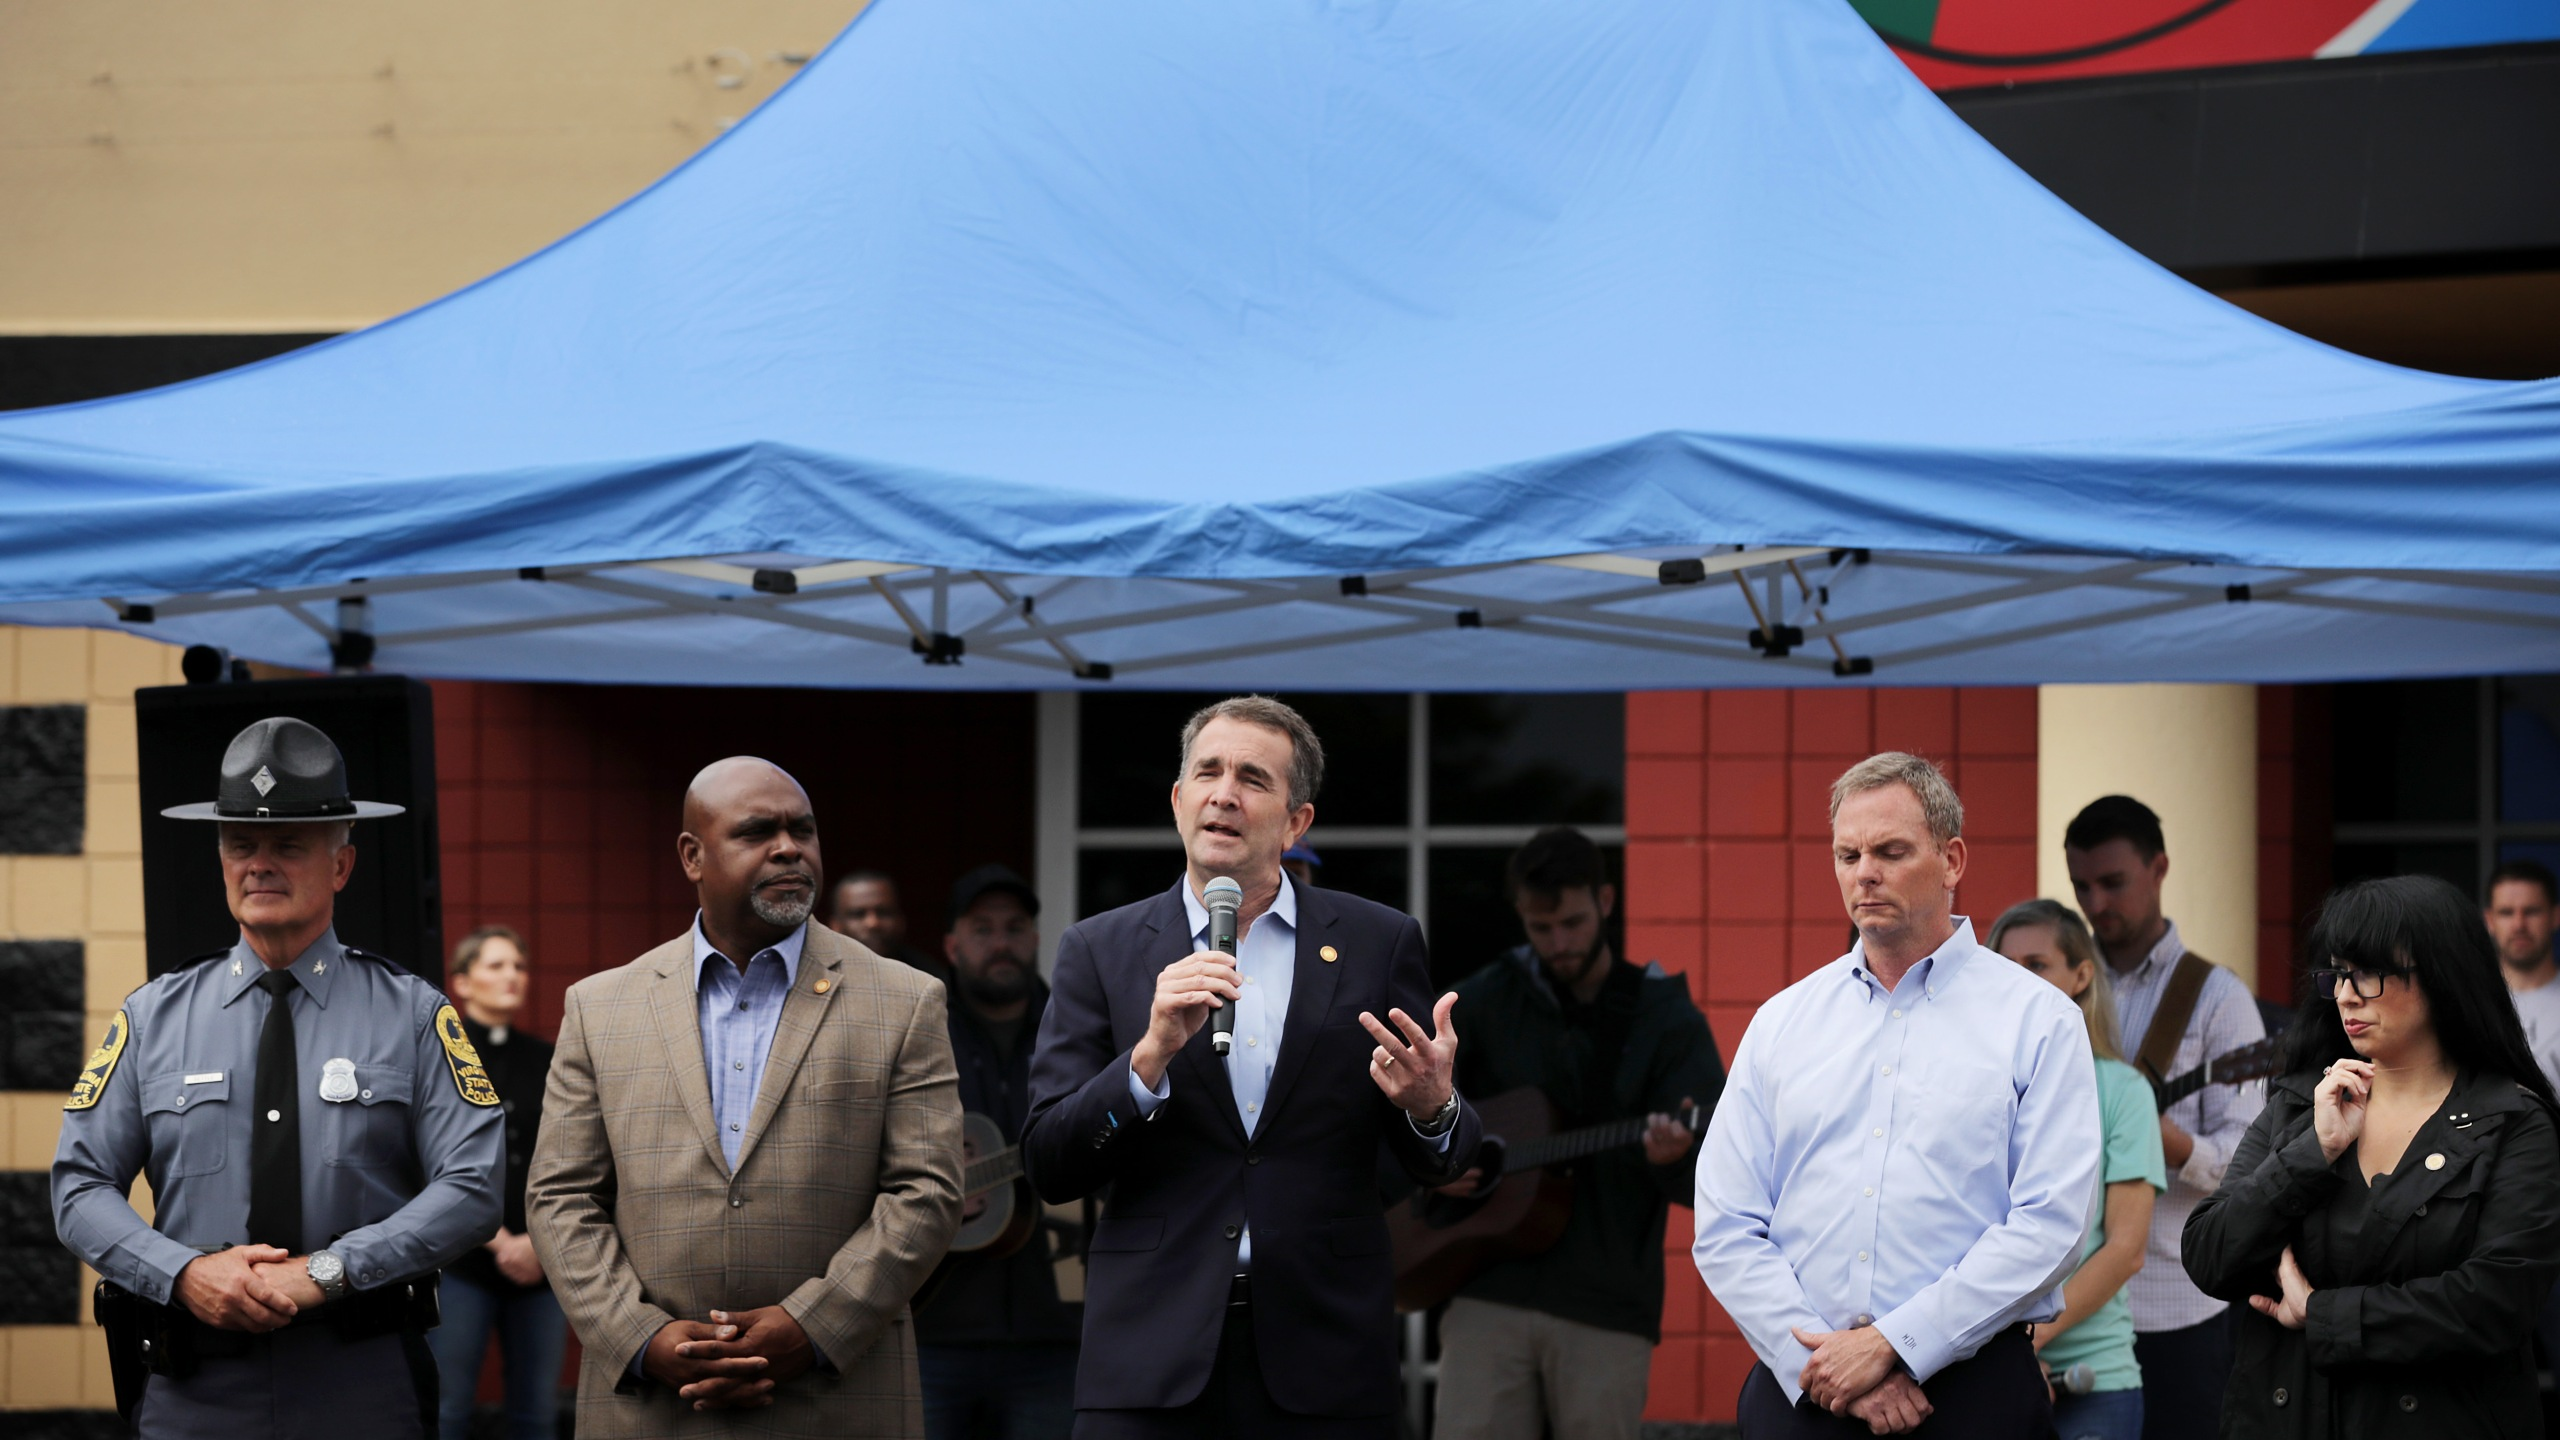 Gov. Ralph Northam, center, speaks during a public prayer service for mass shooting victims in Virginia Beach on June 1, 2019. (Credit: Chip Somodevilla/Getty Images)